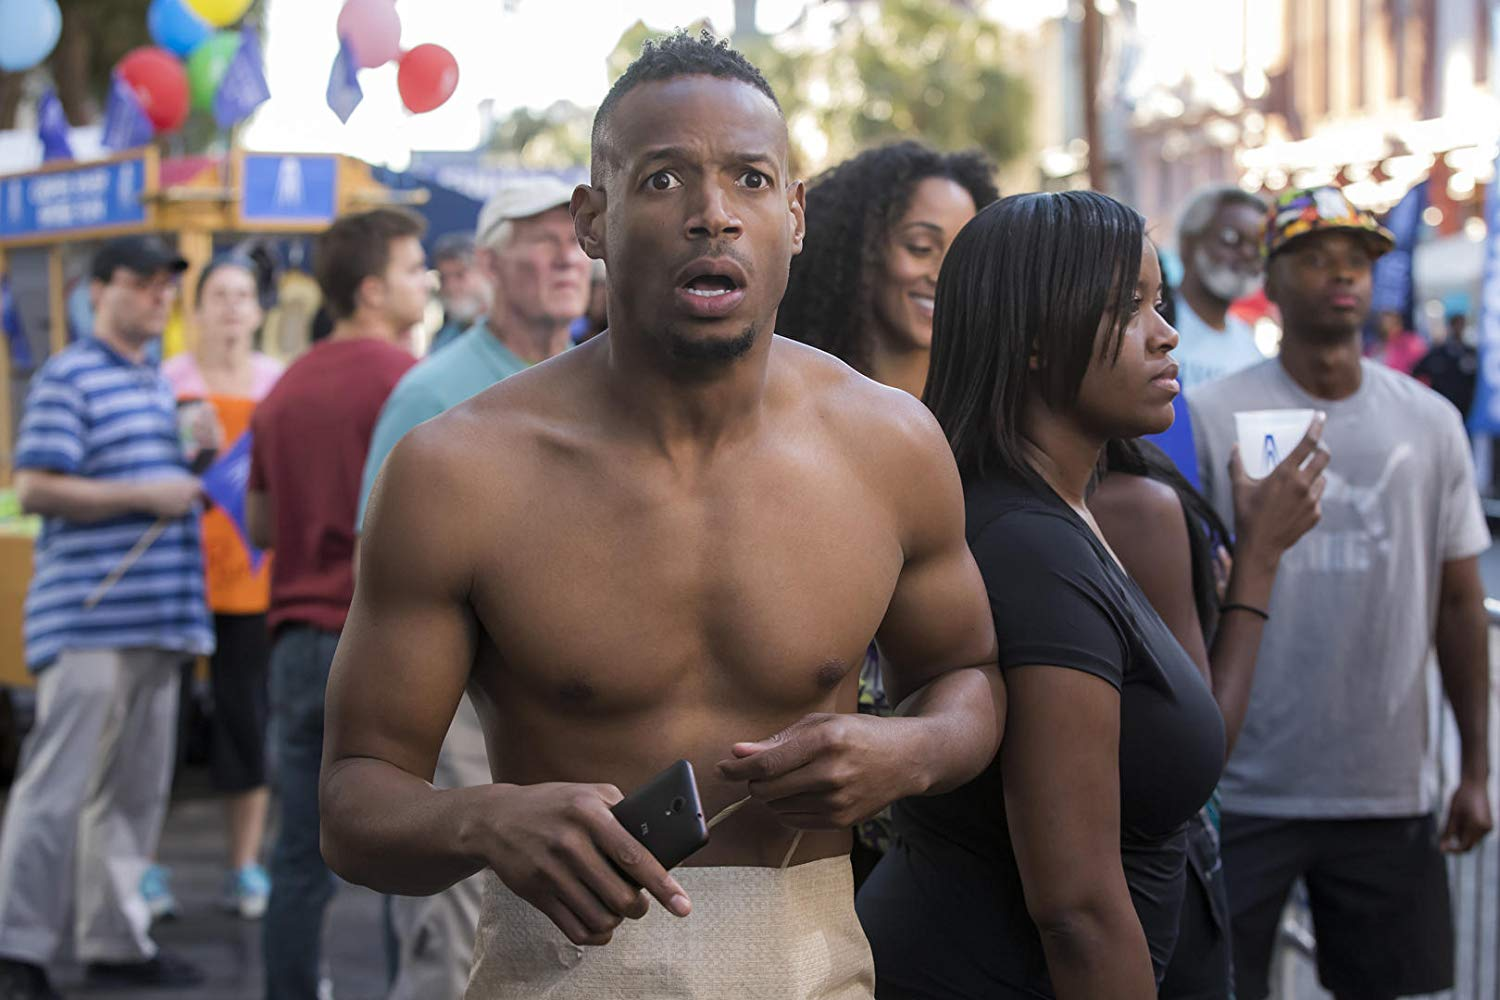 Marlon Wayans forced to make his way through a parade without any clothes in Naked (2017)